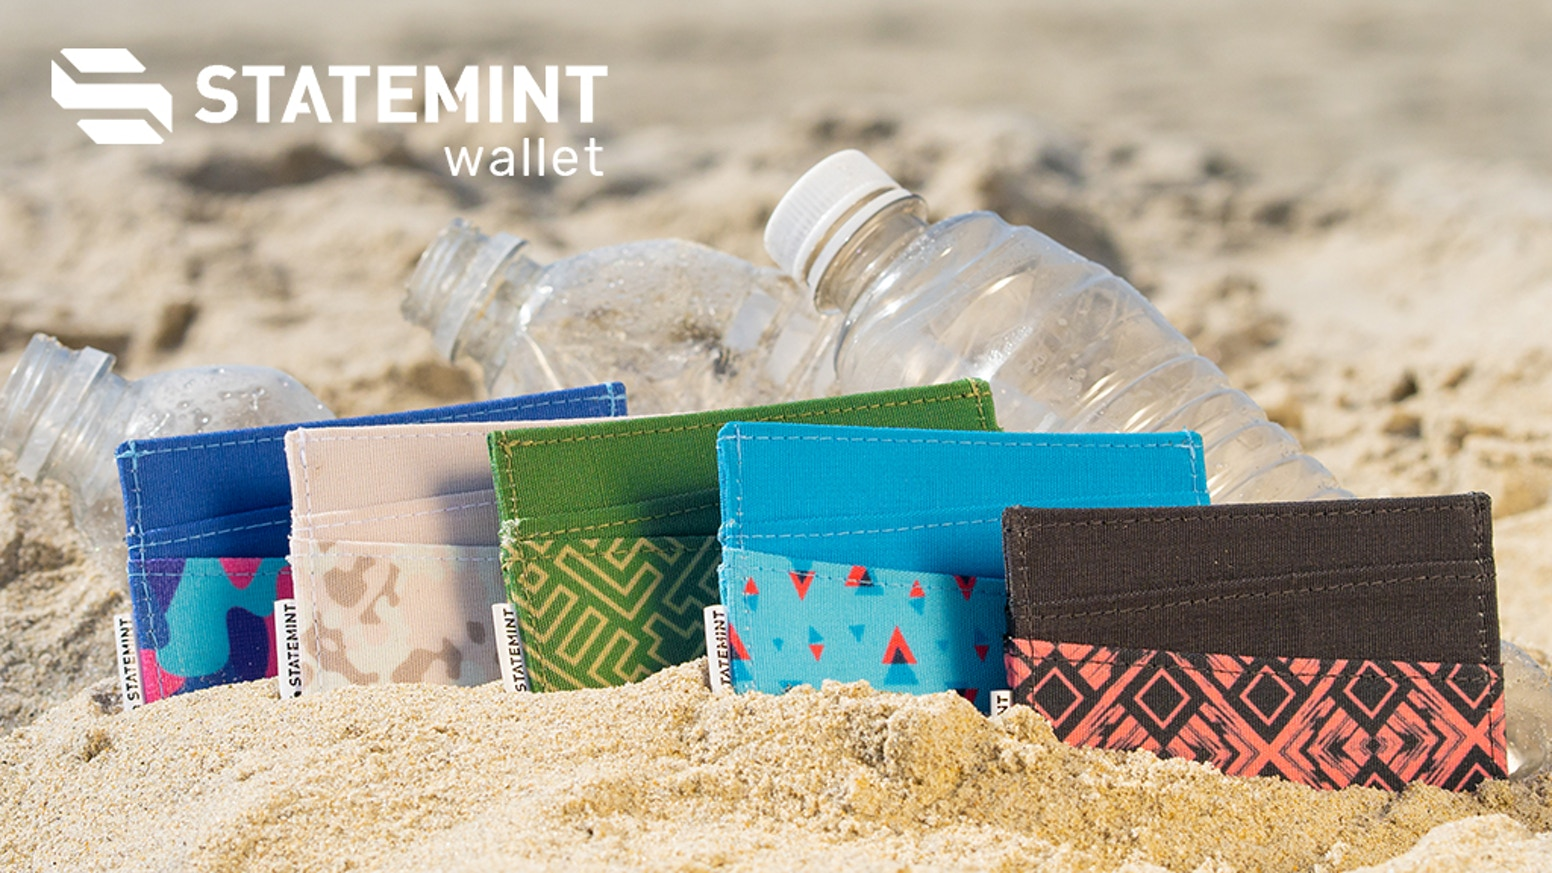 The stylish Statemint Wallet is made of sustainable recycled plastic, prevents ocean pollution & provides recycling education in Africa